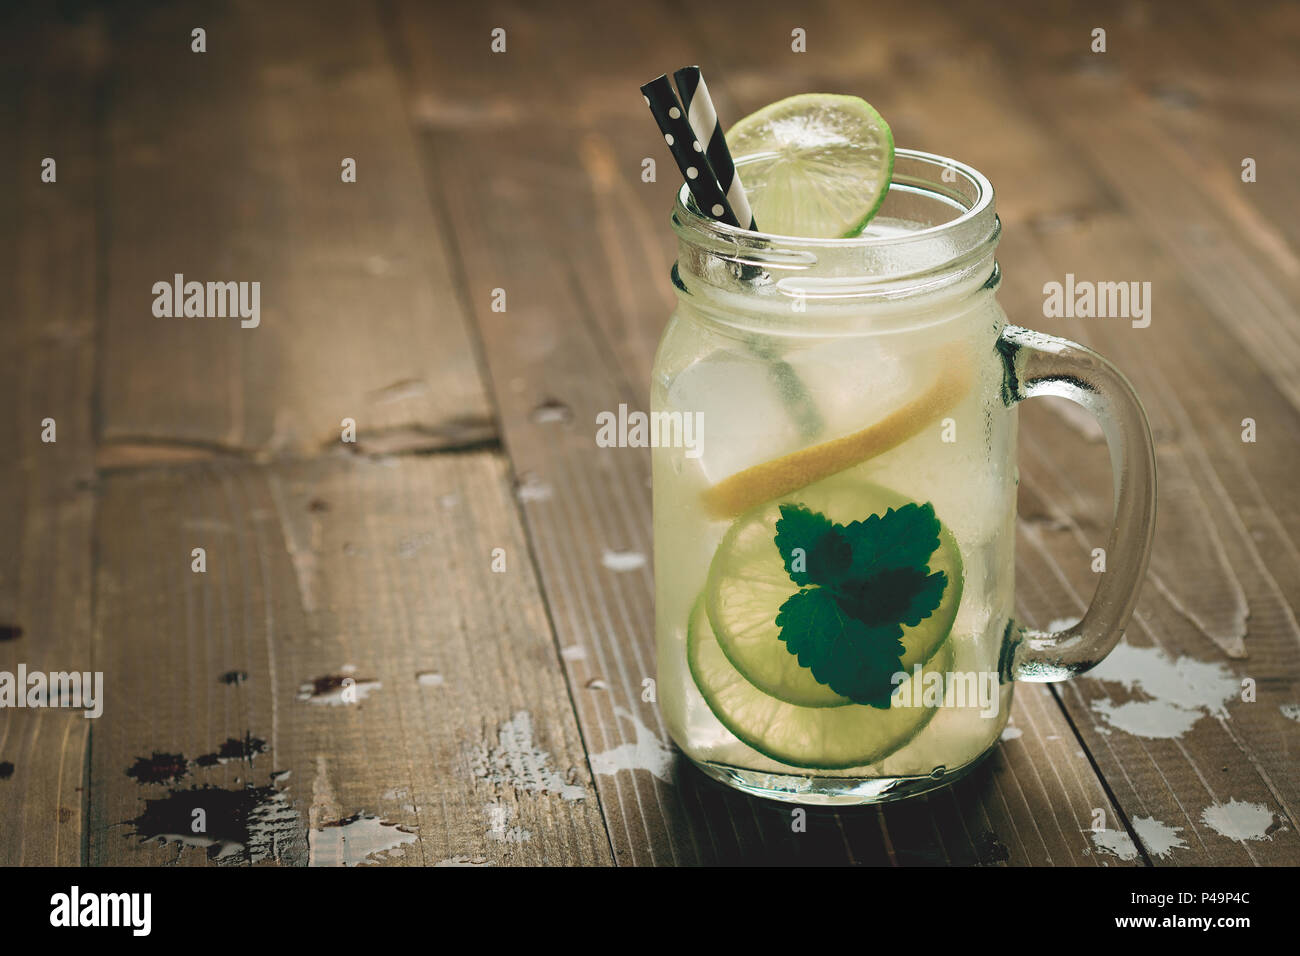 Cold Mojito Cocktail with Ice, Lemon and Mint Leaves in Mason Jar on Rustic Dark Wooden Background as Summer Concept - Stock Image